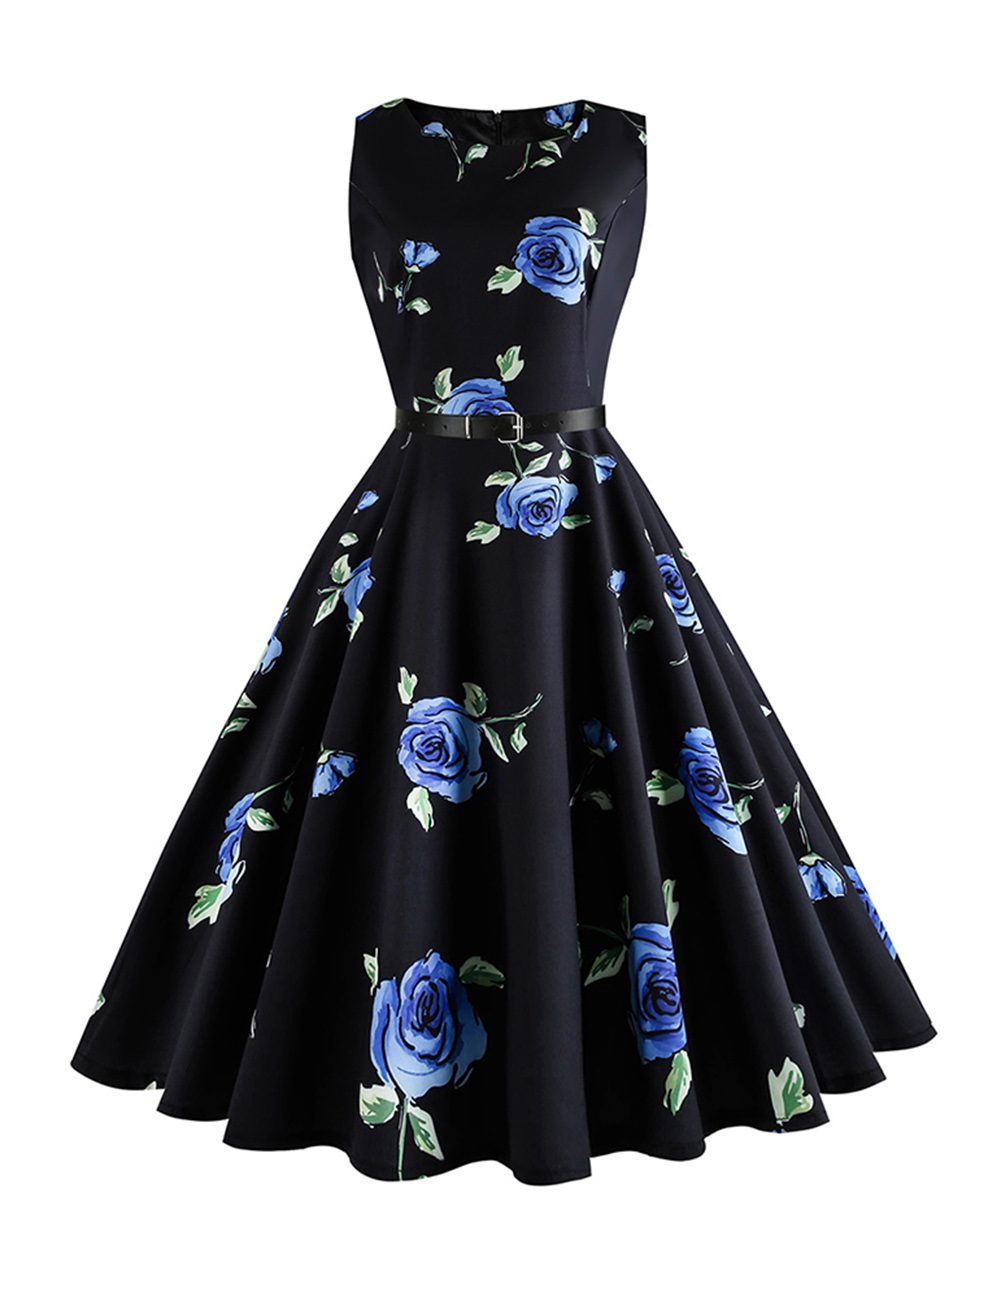 //cdn.affectcloud.com/feelingirldress/upload/imgs/2019-05-13/I195195-M01/I195195-M01.jpg